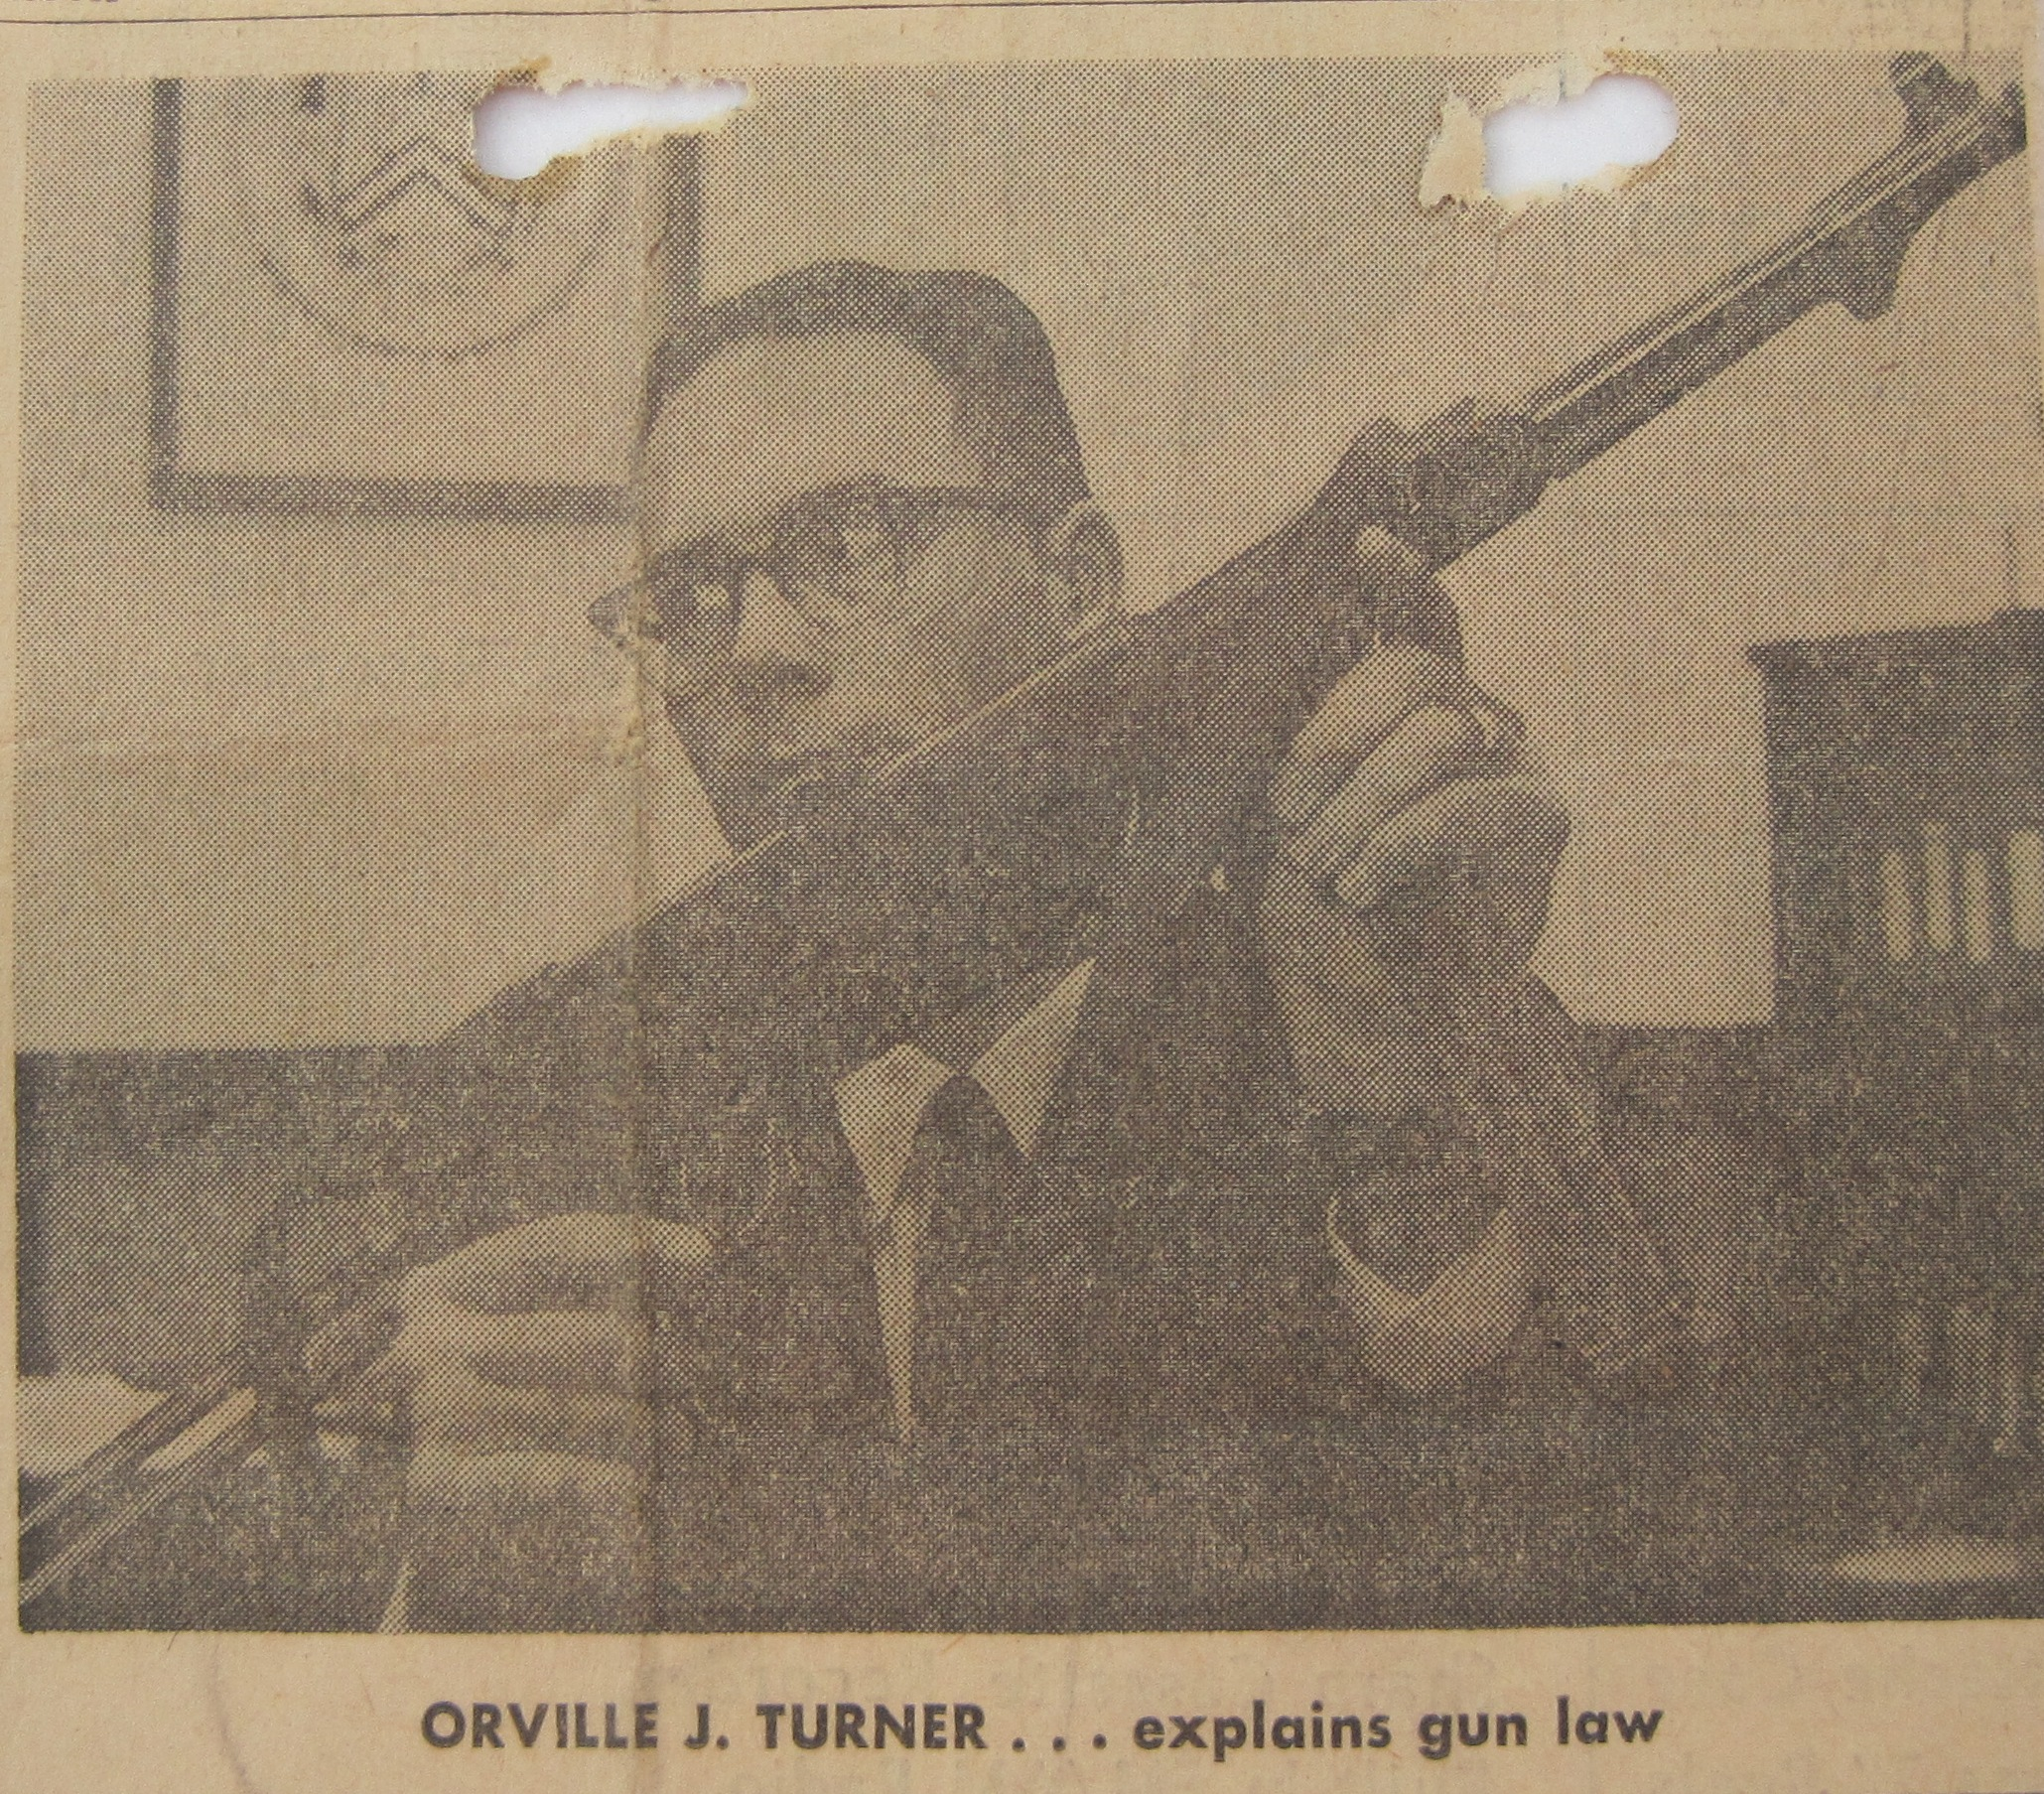 Detroit News , Sunday, November 10, 1968. Assistant Special Agent in Charge Orville J. Turner